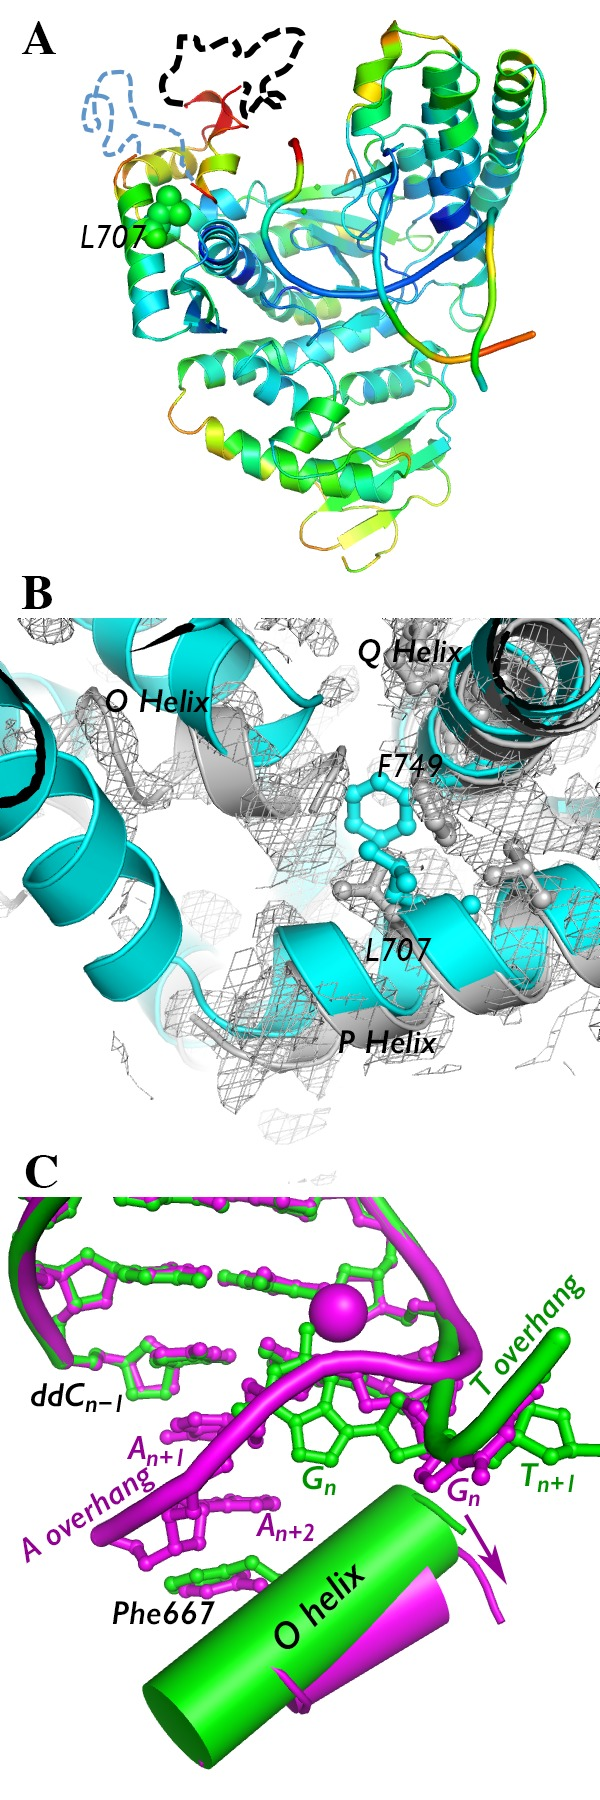 Crystal structure of I707L KlenTaq1–DNA binary complex. (A) The crystal structure of the I707L mutant binary complex is colored by B-factor (ranging from 30 (blue) to 100 (red)). Portions of the fingers subdomain that could not be modeled are denoted by dashed lines (black, residues 637–660; blue, residues 673–699). (B) The fingers subdomain was more difficult to model in the binary complex (gray) compared to the ternary complex (cyan). Gray mesh, 2 F o – F c map of binary complex at 1.0σ. (C) Conformation of the DNA (colored ball and sticks) and O helix near the active site of I707L KlenTaq1 binary complex containing an AAA overhang (magenta) vs a TTT overhang (green). The DNA backbone is traced with a thick tube. The shift in the O helix angle is shown with an arrow. Nucleotides are numbered relative to the nucleotide to be copied ( n ). Manganese(II) ion bound to DNA is shown as a magenta ball.